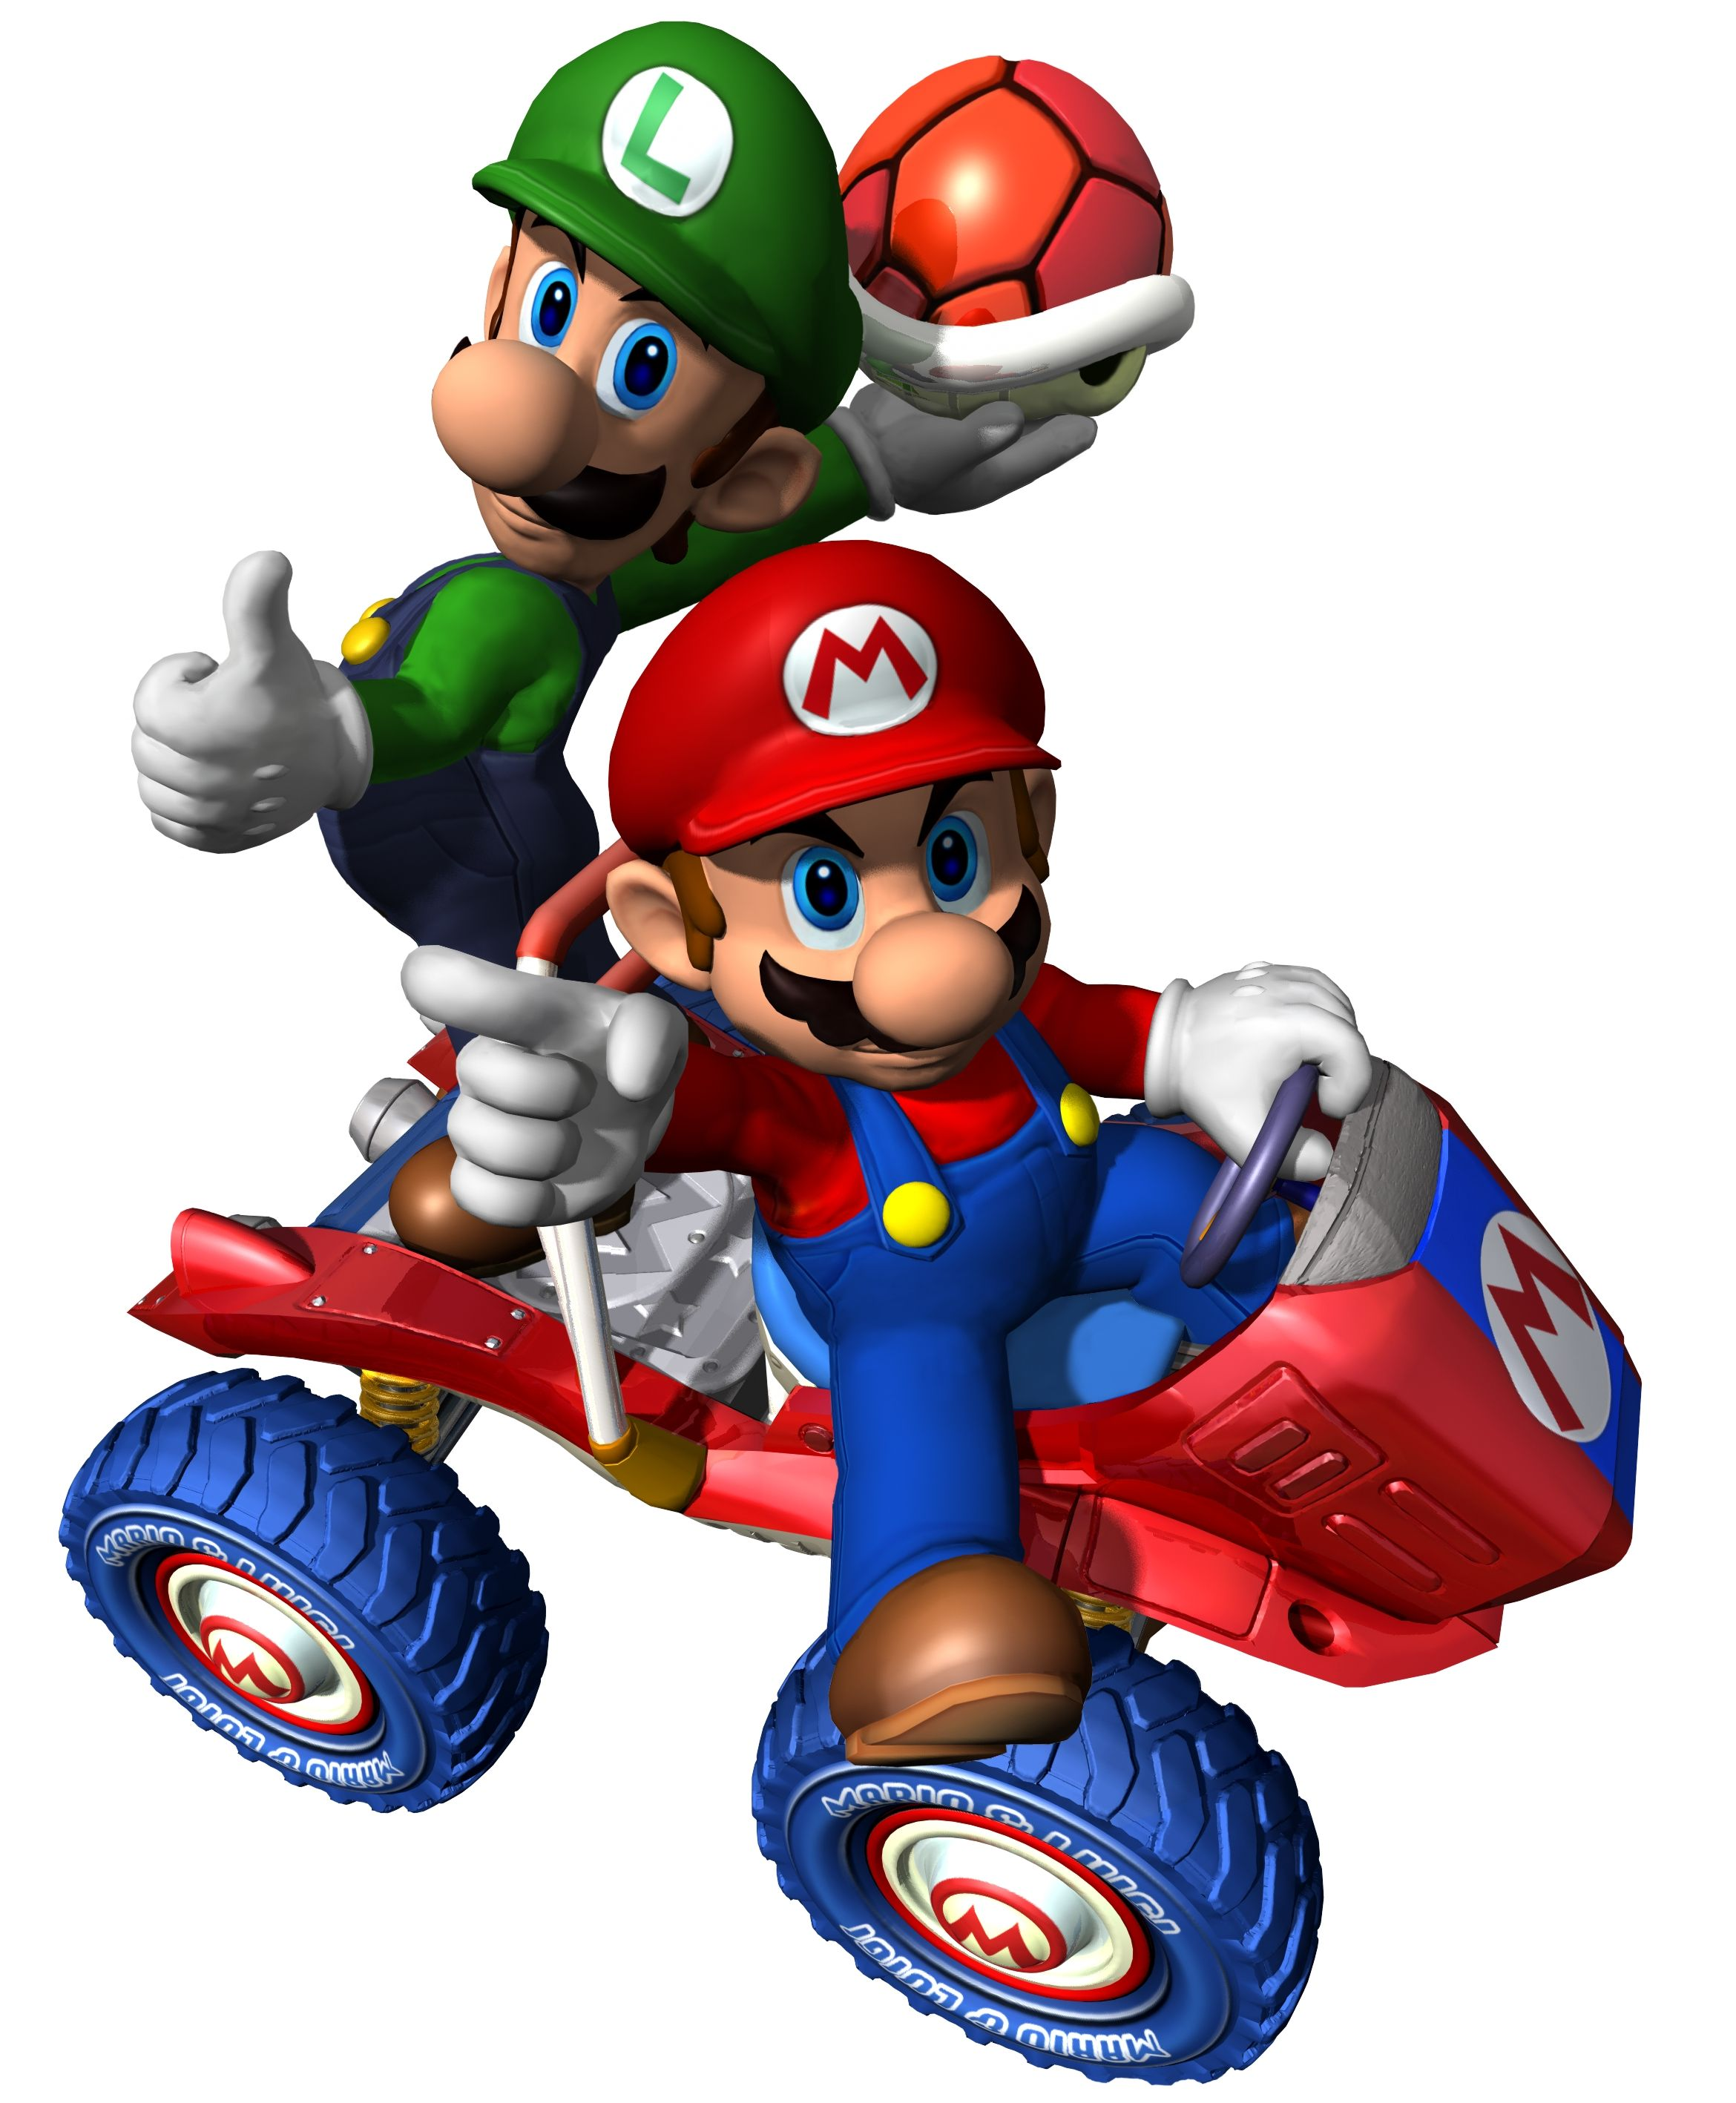 Mario And Luigi Mario Kart Double Dash Mario And Luigi Super